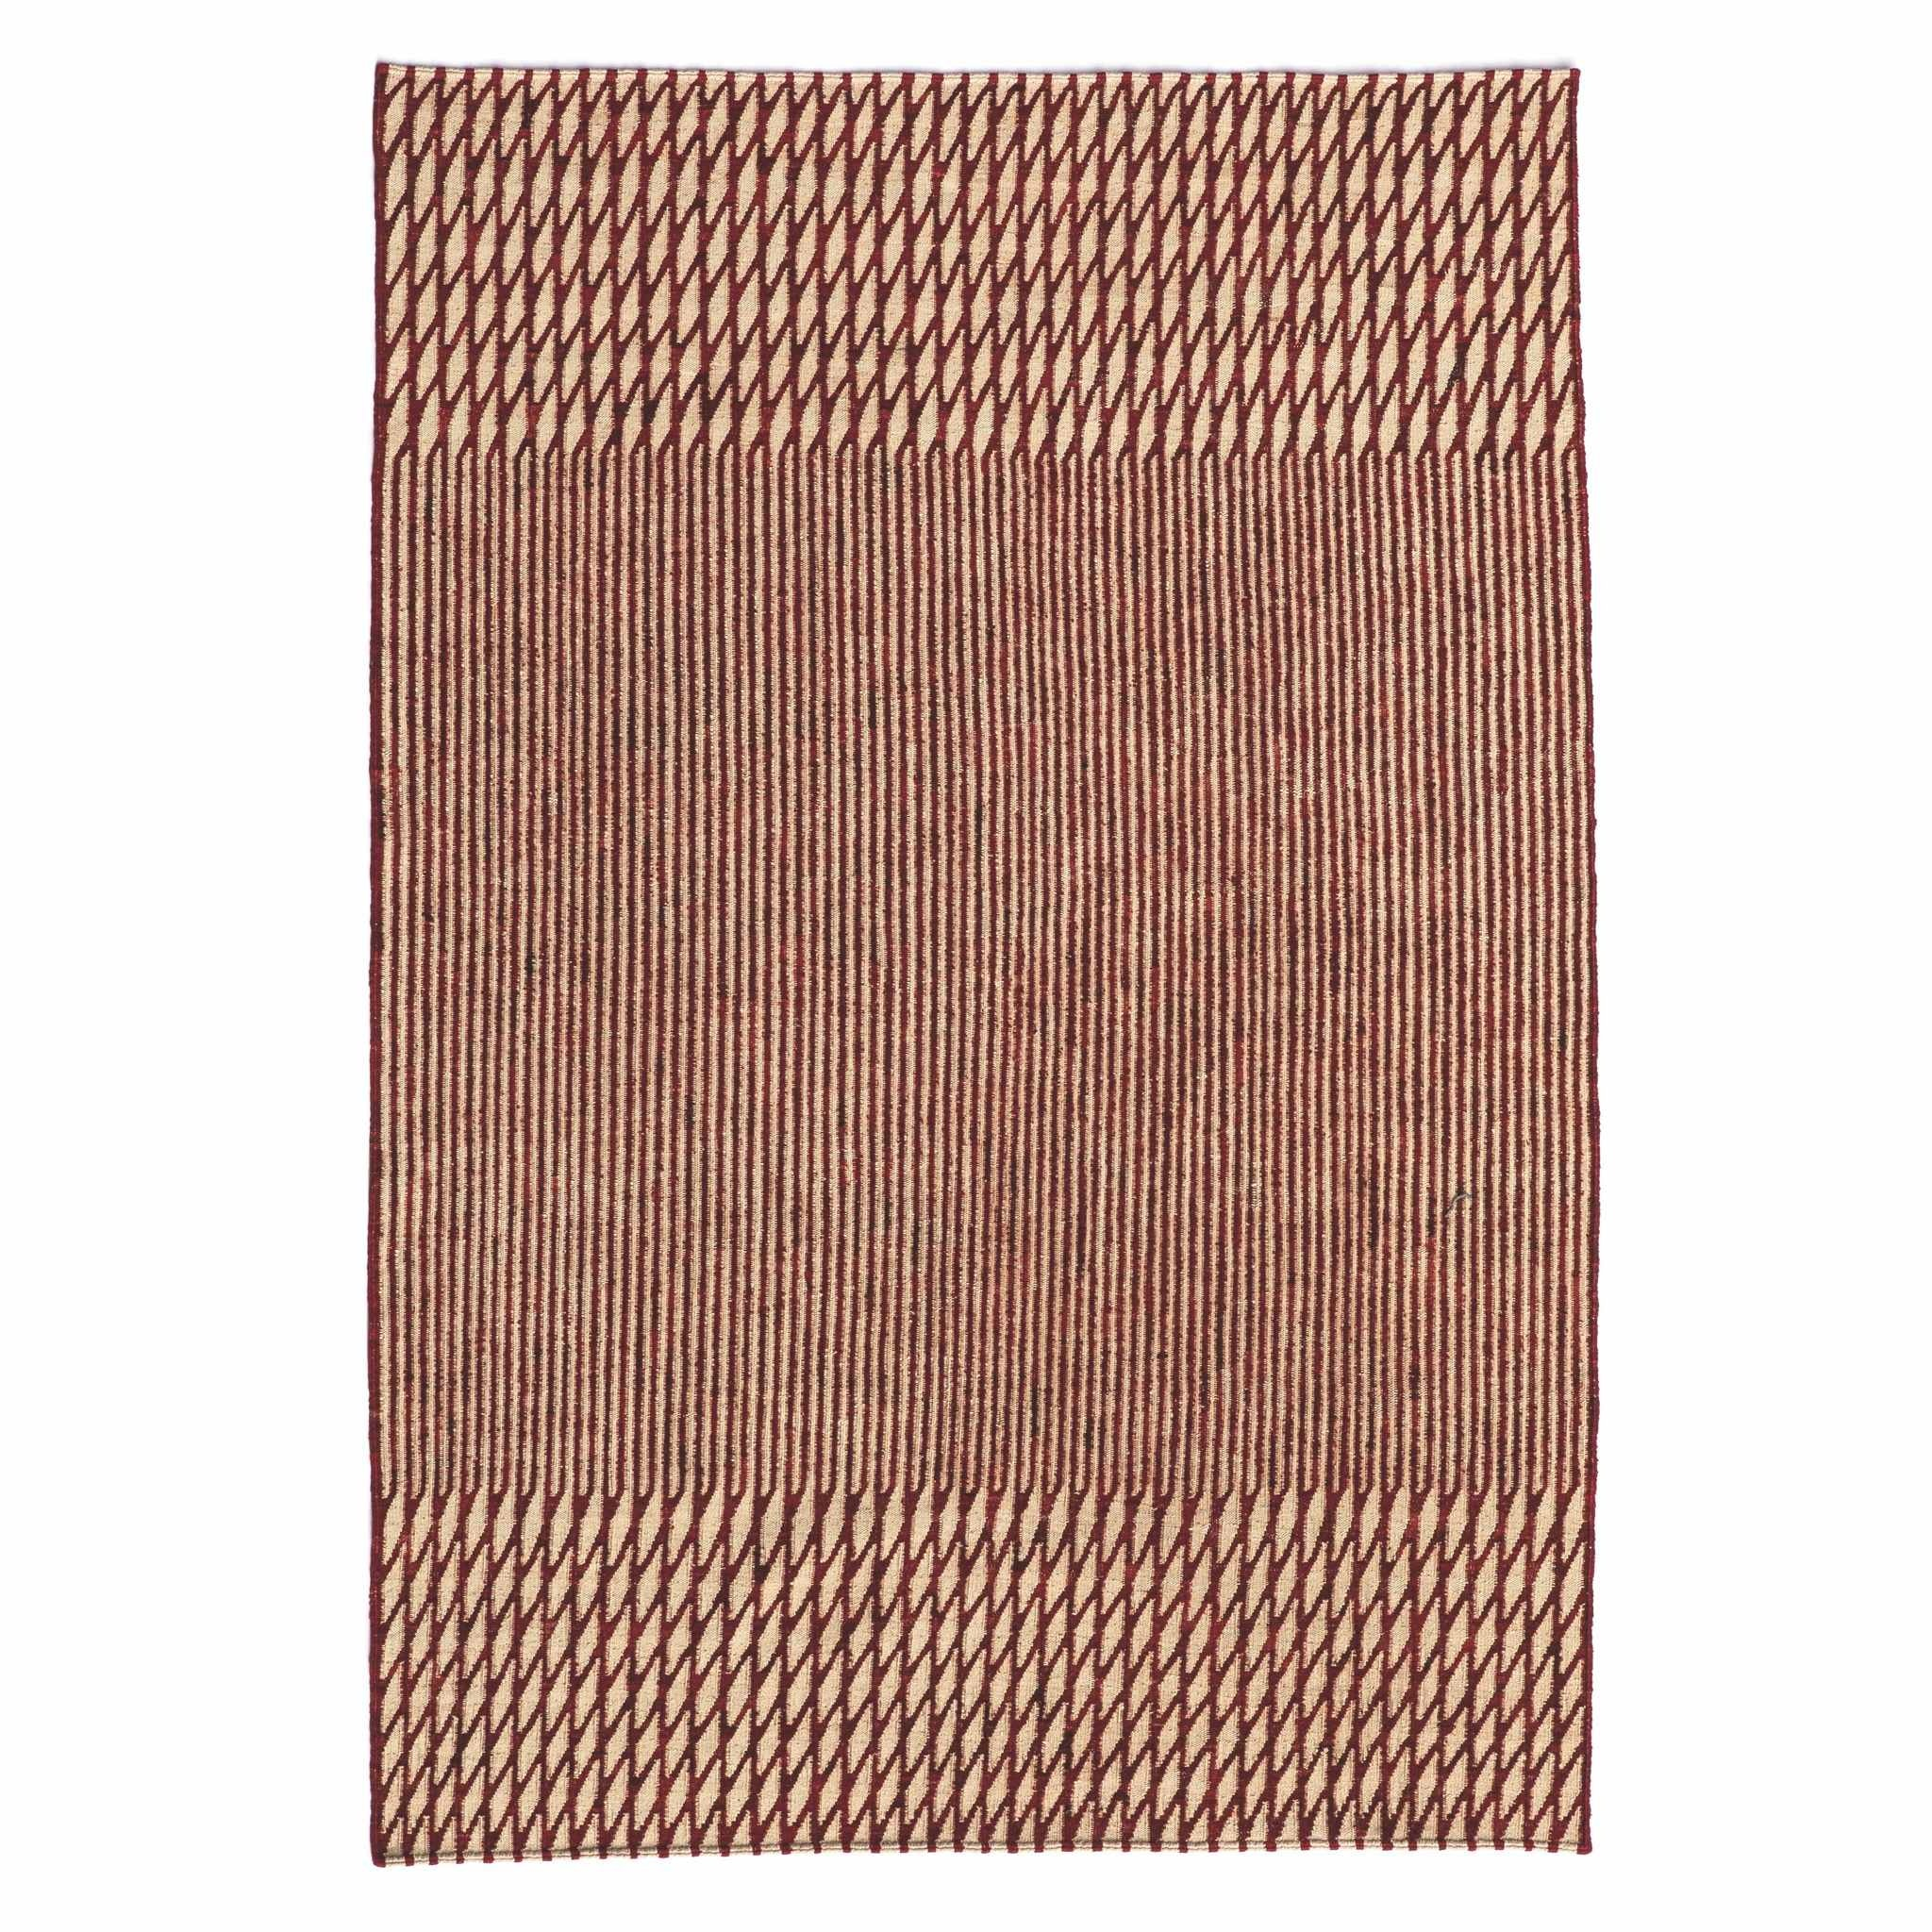 Blur Rug by Nanimarquina